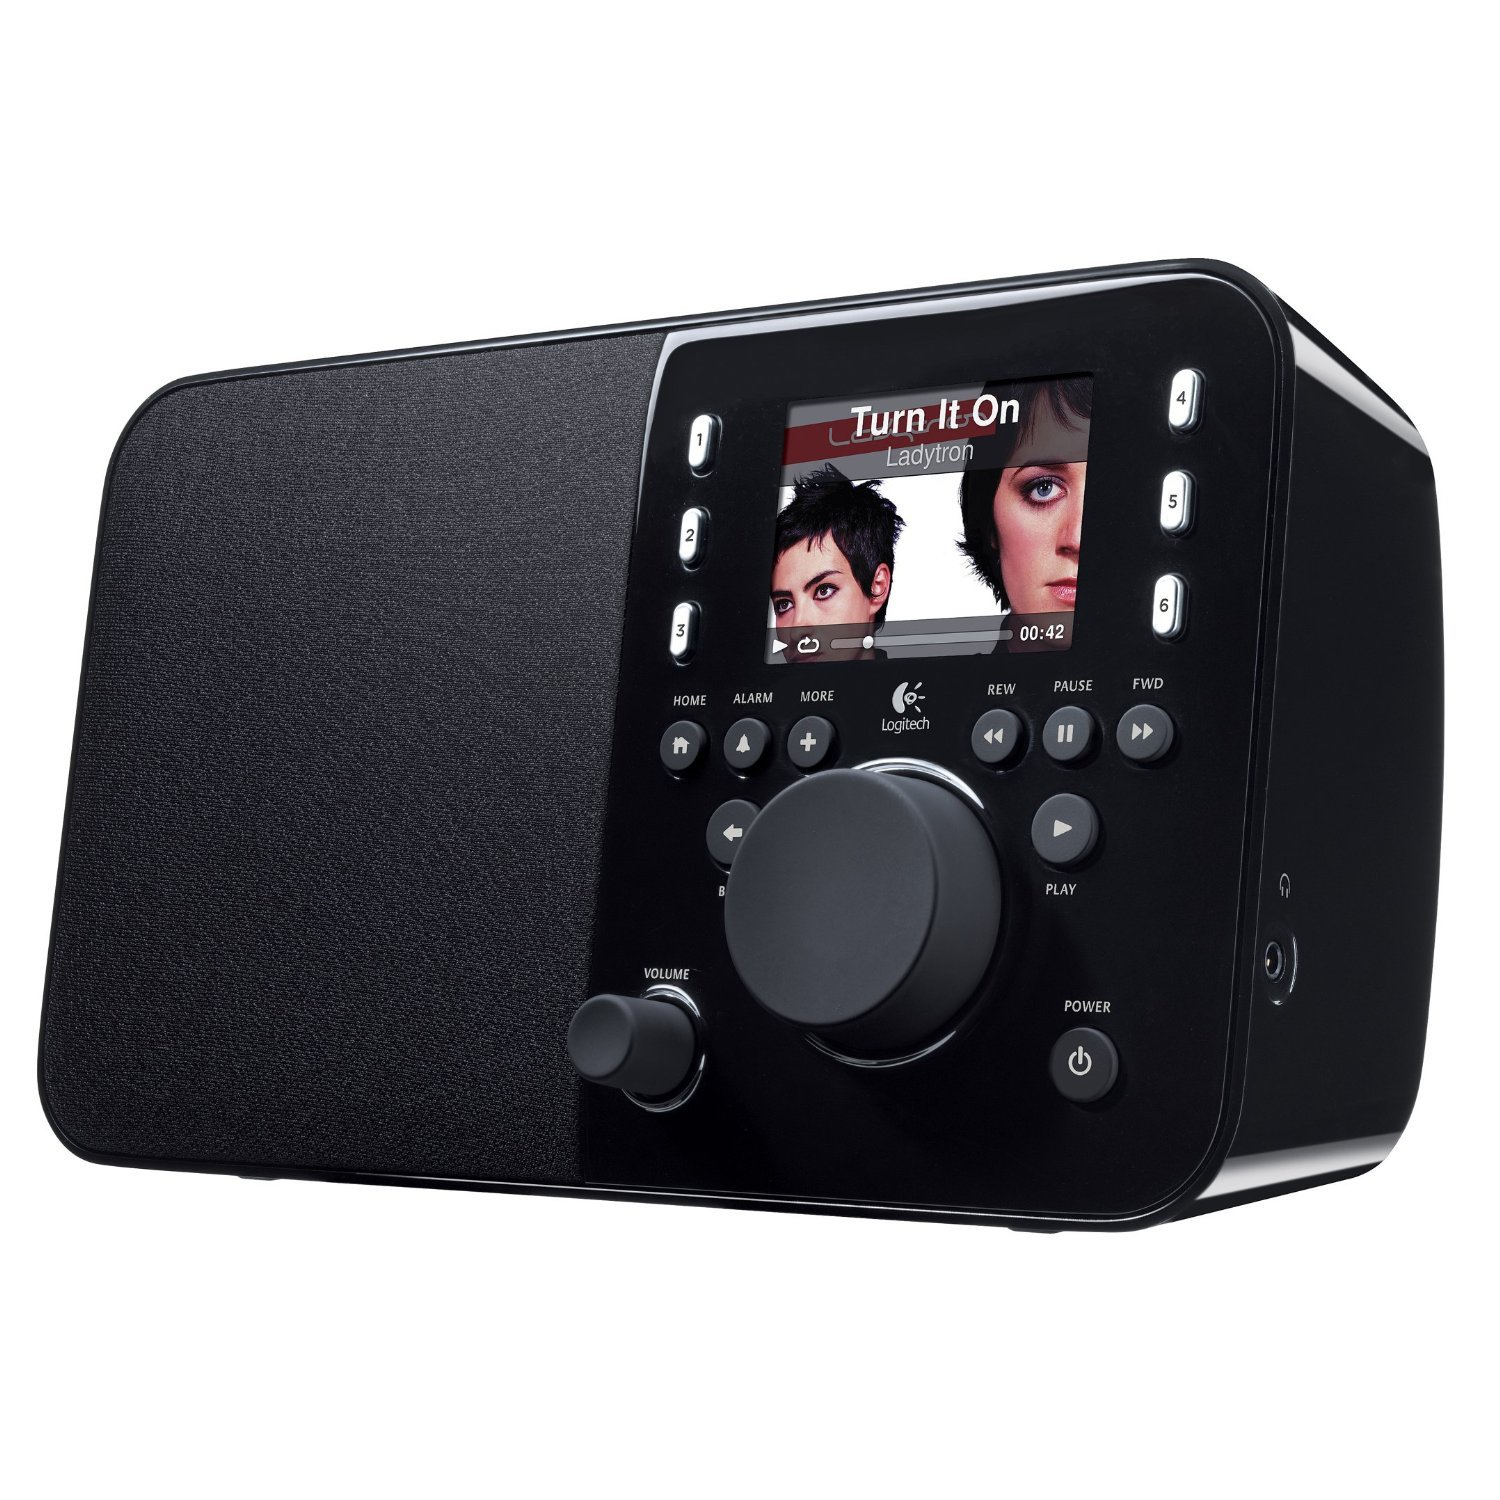 Amazon.com: Logitech Squeezebox Radio Music Player with Color Screen  (Black) (Discontinued by Manufacturer): Home Audio & Theater